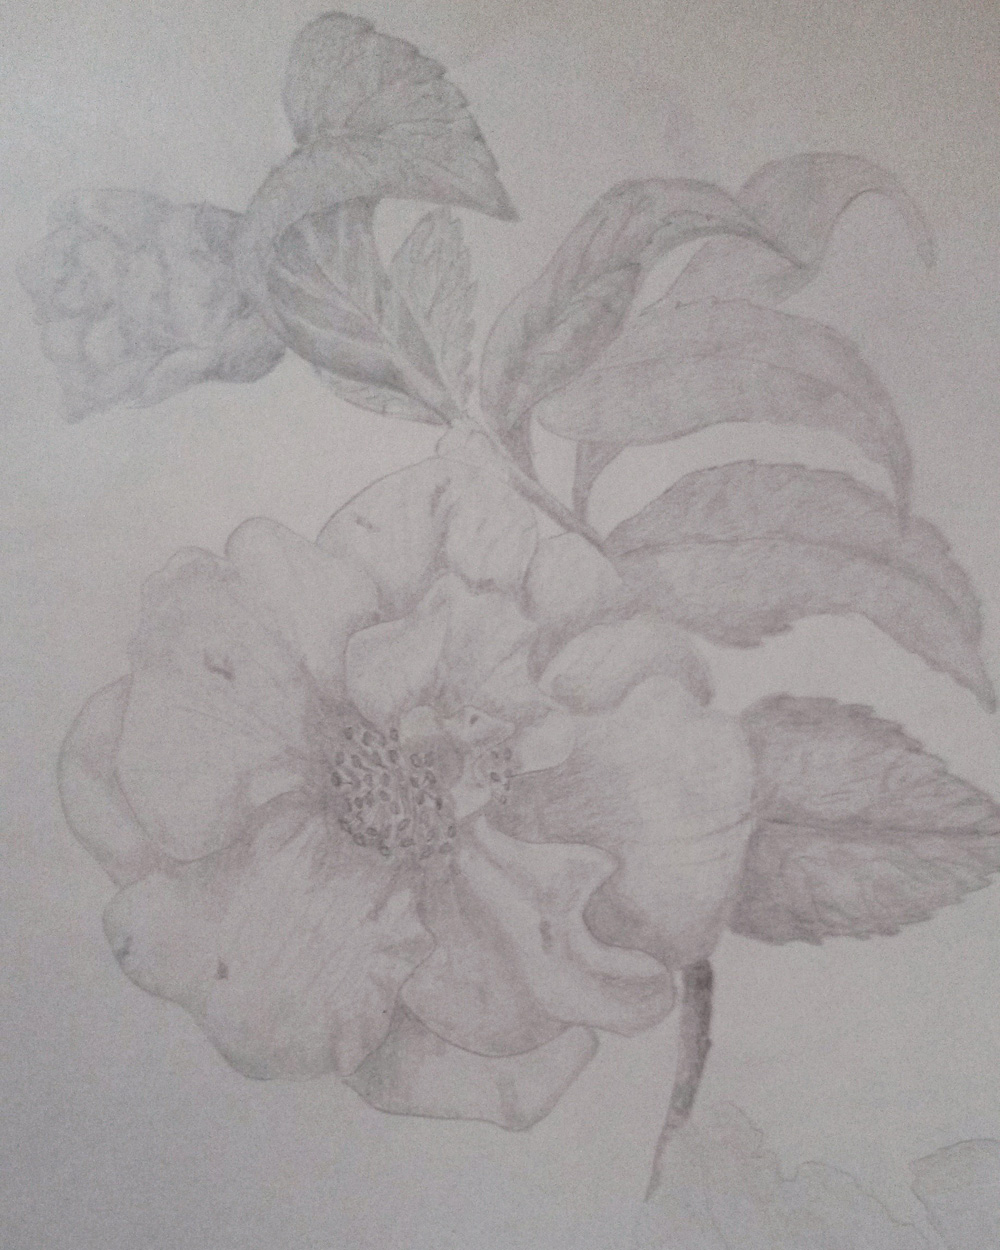 Graphite sketch of a single, white Camellia with a bud and leaves overhanging